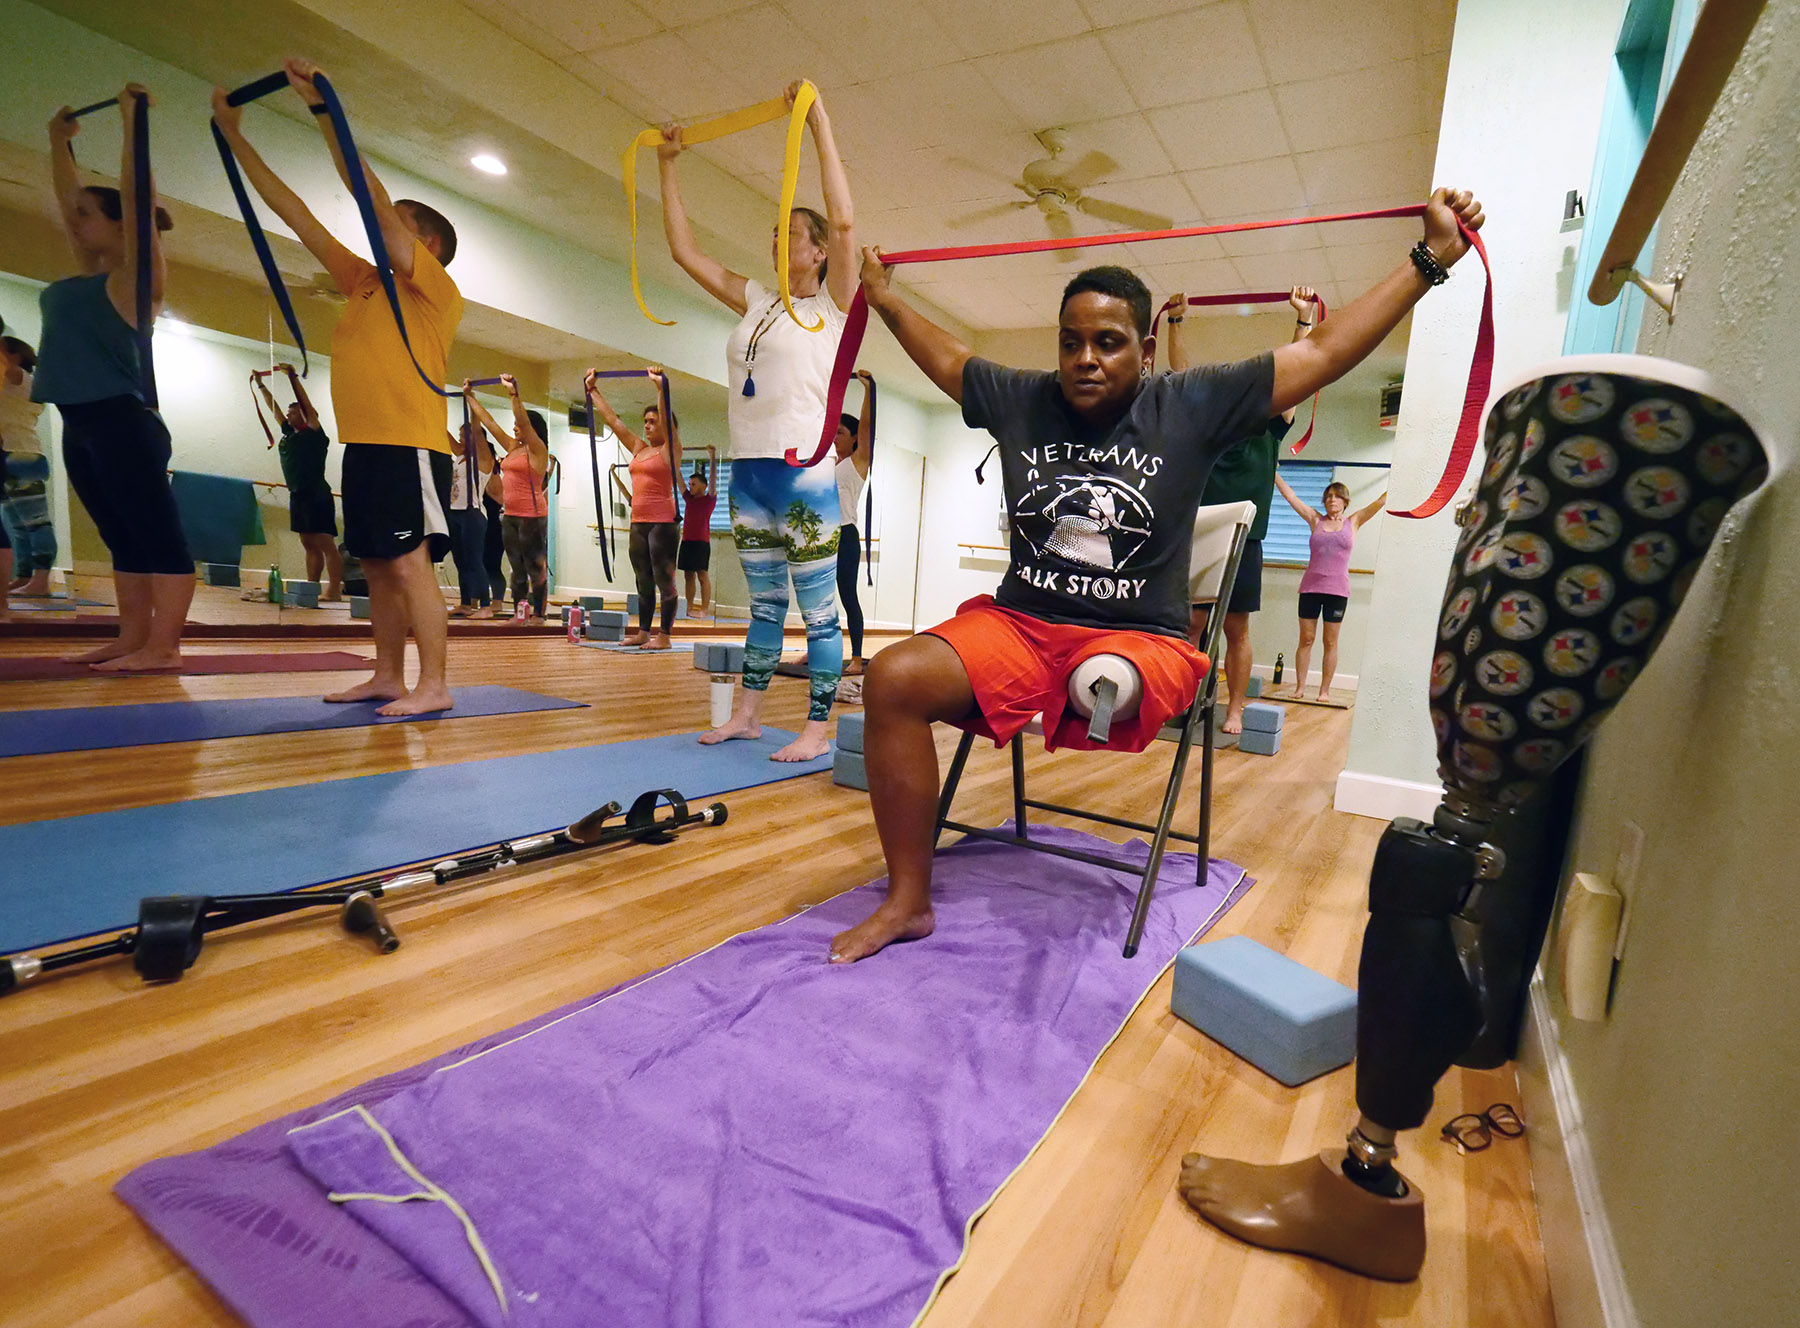 US veteran Cyndi Lee sits as she stretches during a yoga class designed specifically for veterans called Warriors At Ease at the Bella Kai Yoga Studio in Kailua, Wednesday, November 7, 2018. (Civil Beat photo Ronen Zilberman)